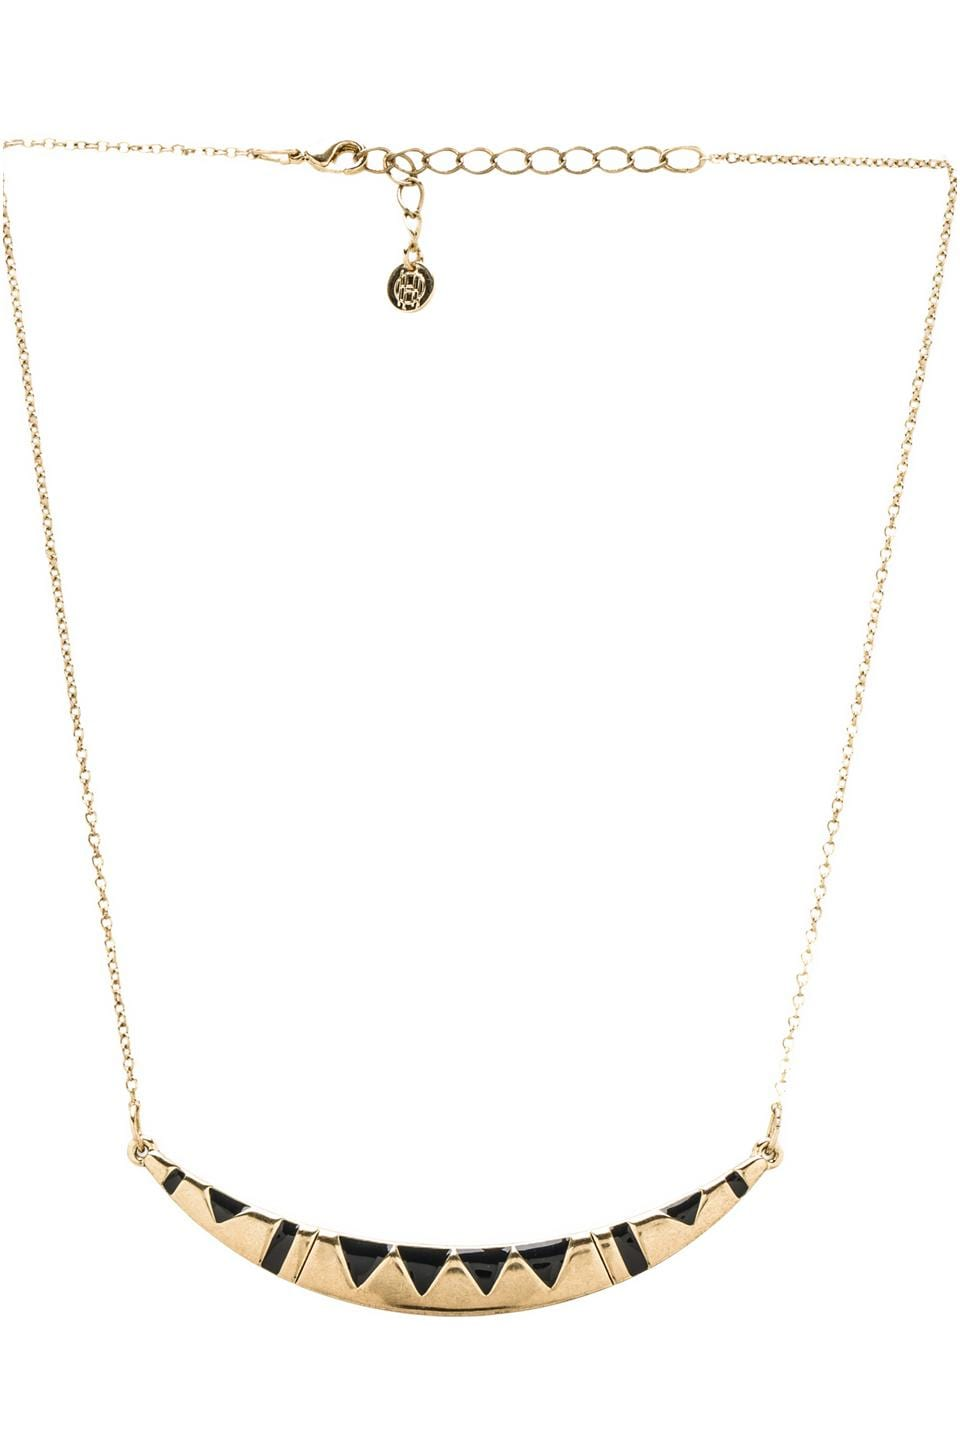 House of Harlow 1960 House of Harlow Three Caves Pendant Necklace in Gold Tone Navy